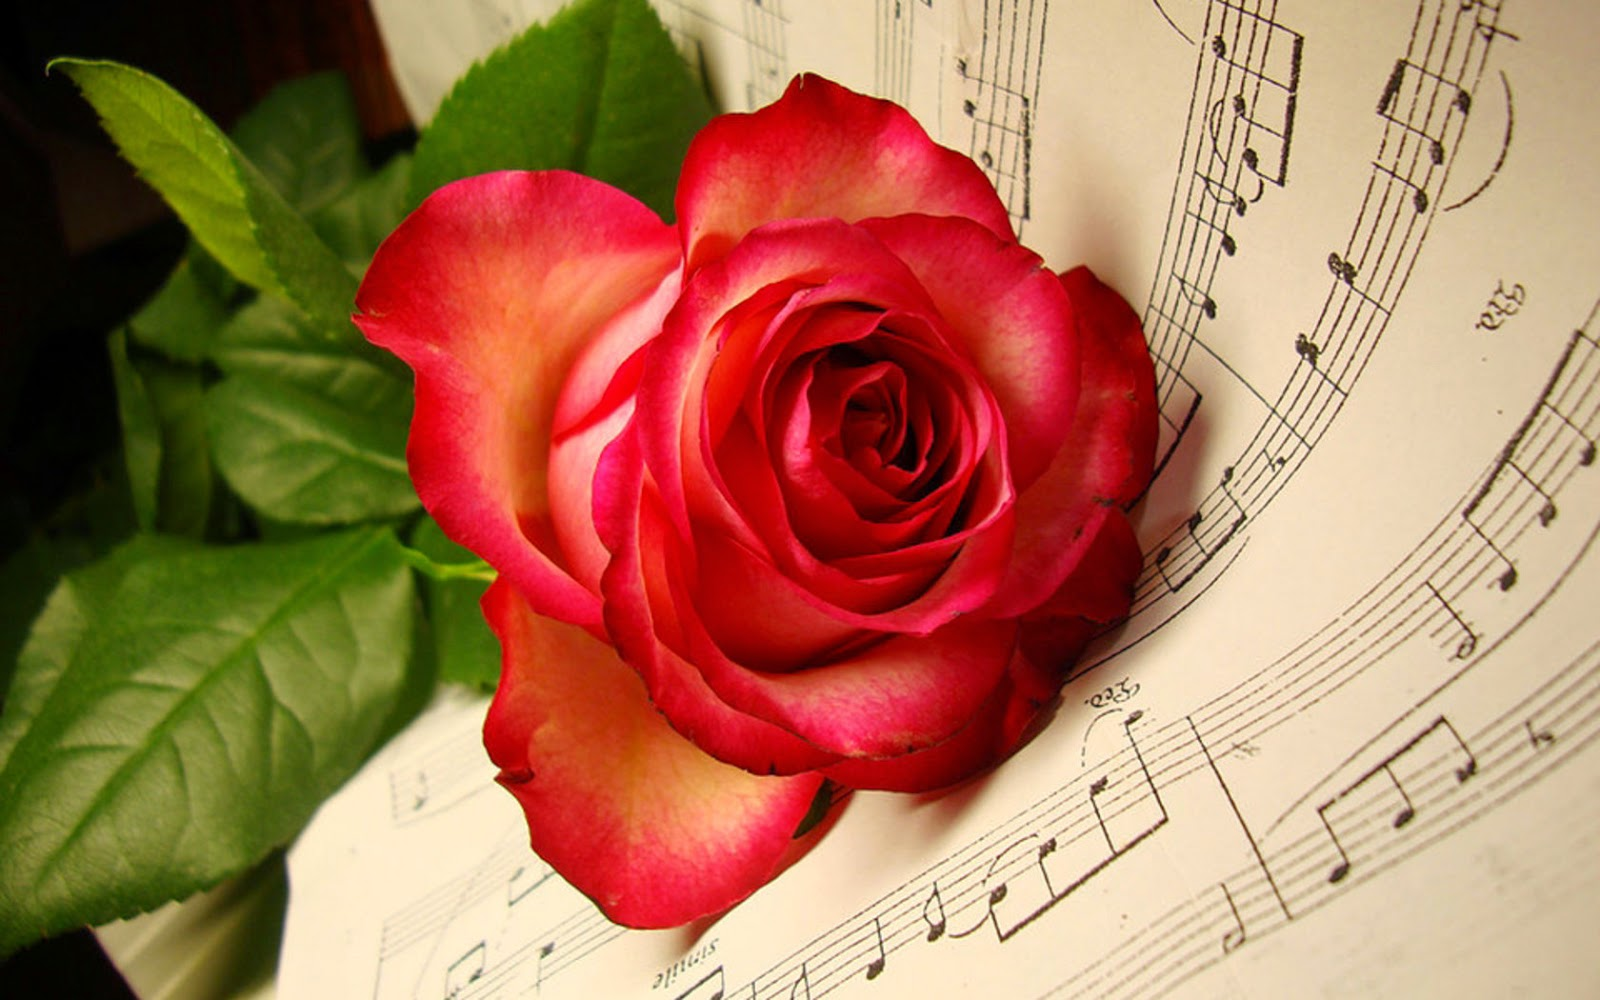 Top 25 red rose wallpapers hd download high definition - Hd rose wallpaper for android mobile ...